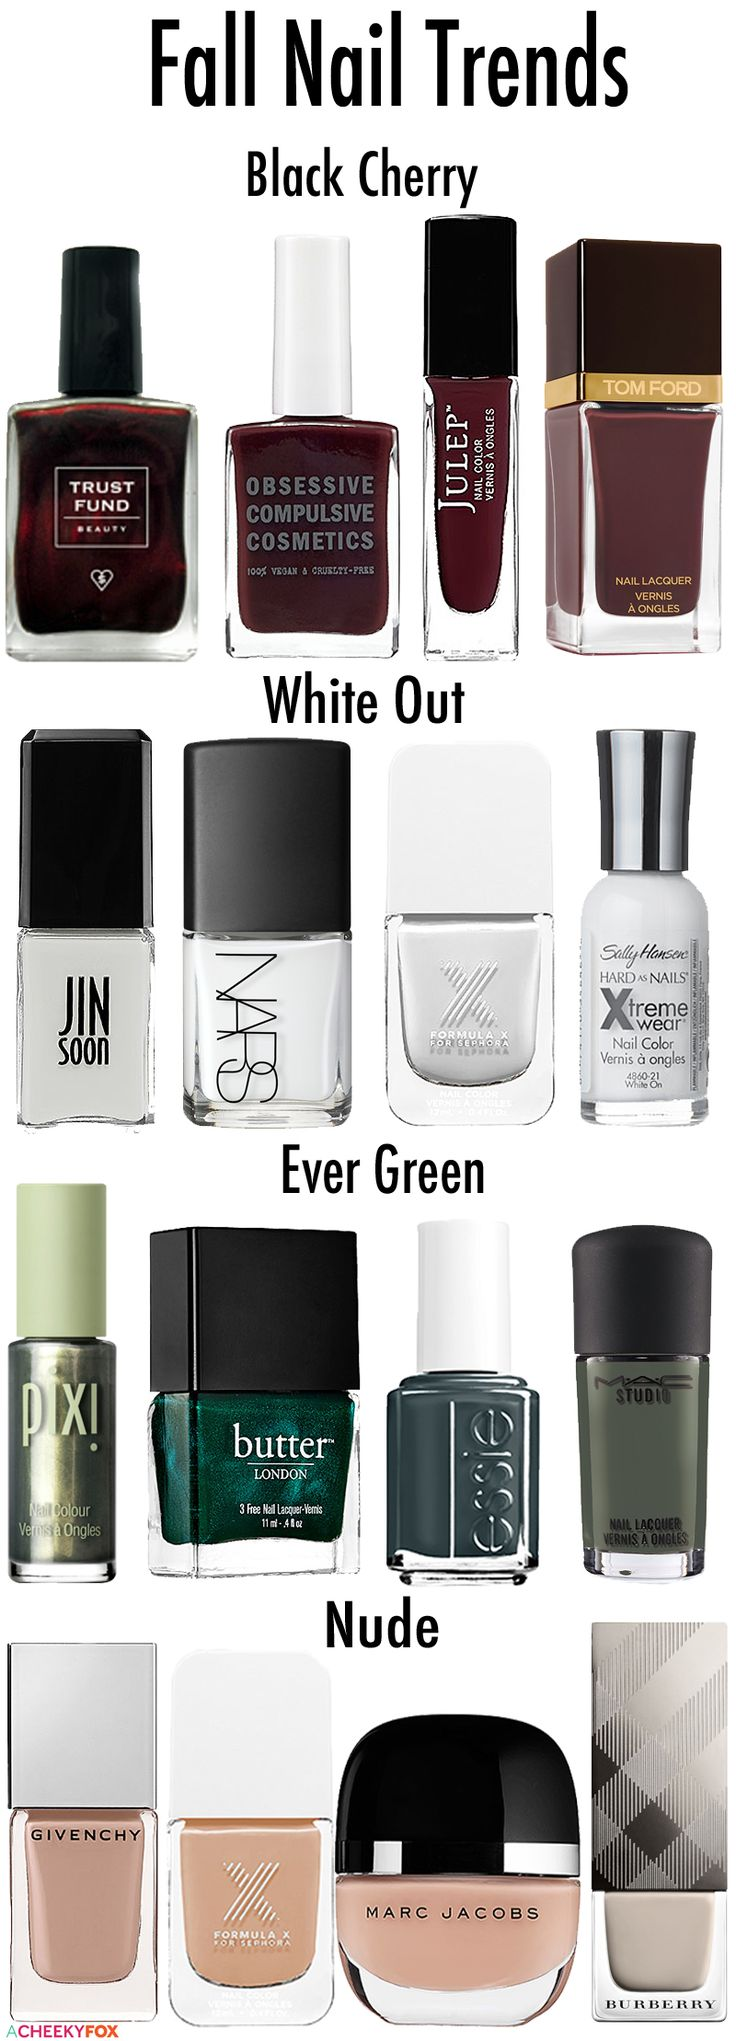 Instead of feeling summertime sadness, I'm going to rejoice in that autumntime gladness with my favorite fall nail colors for 2014.